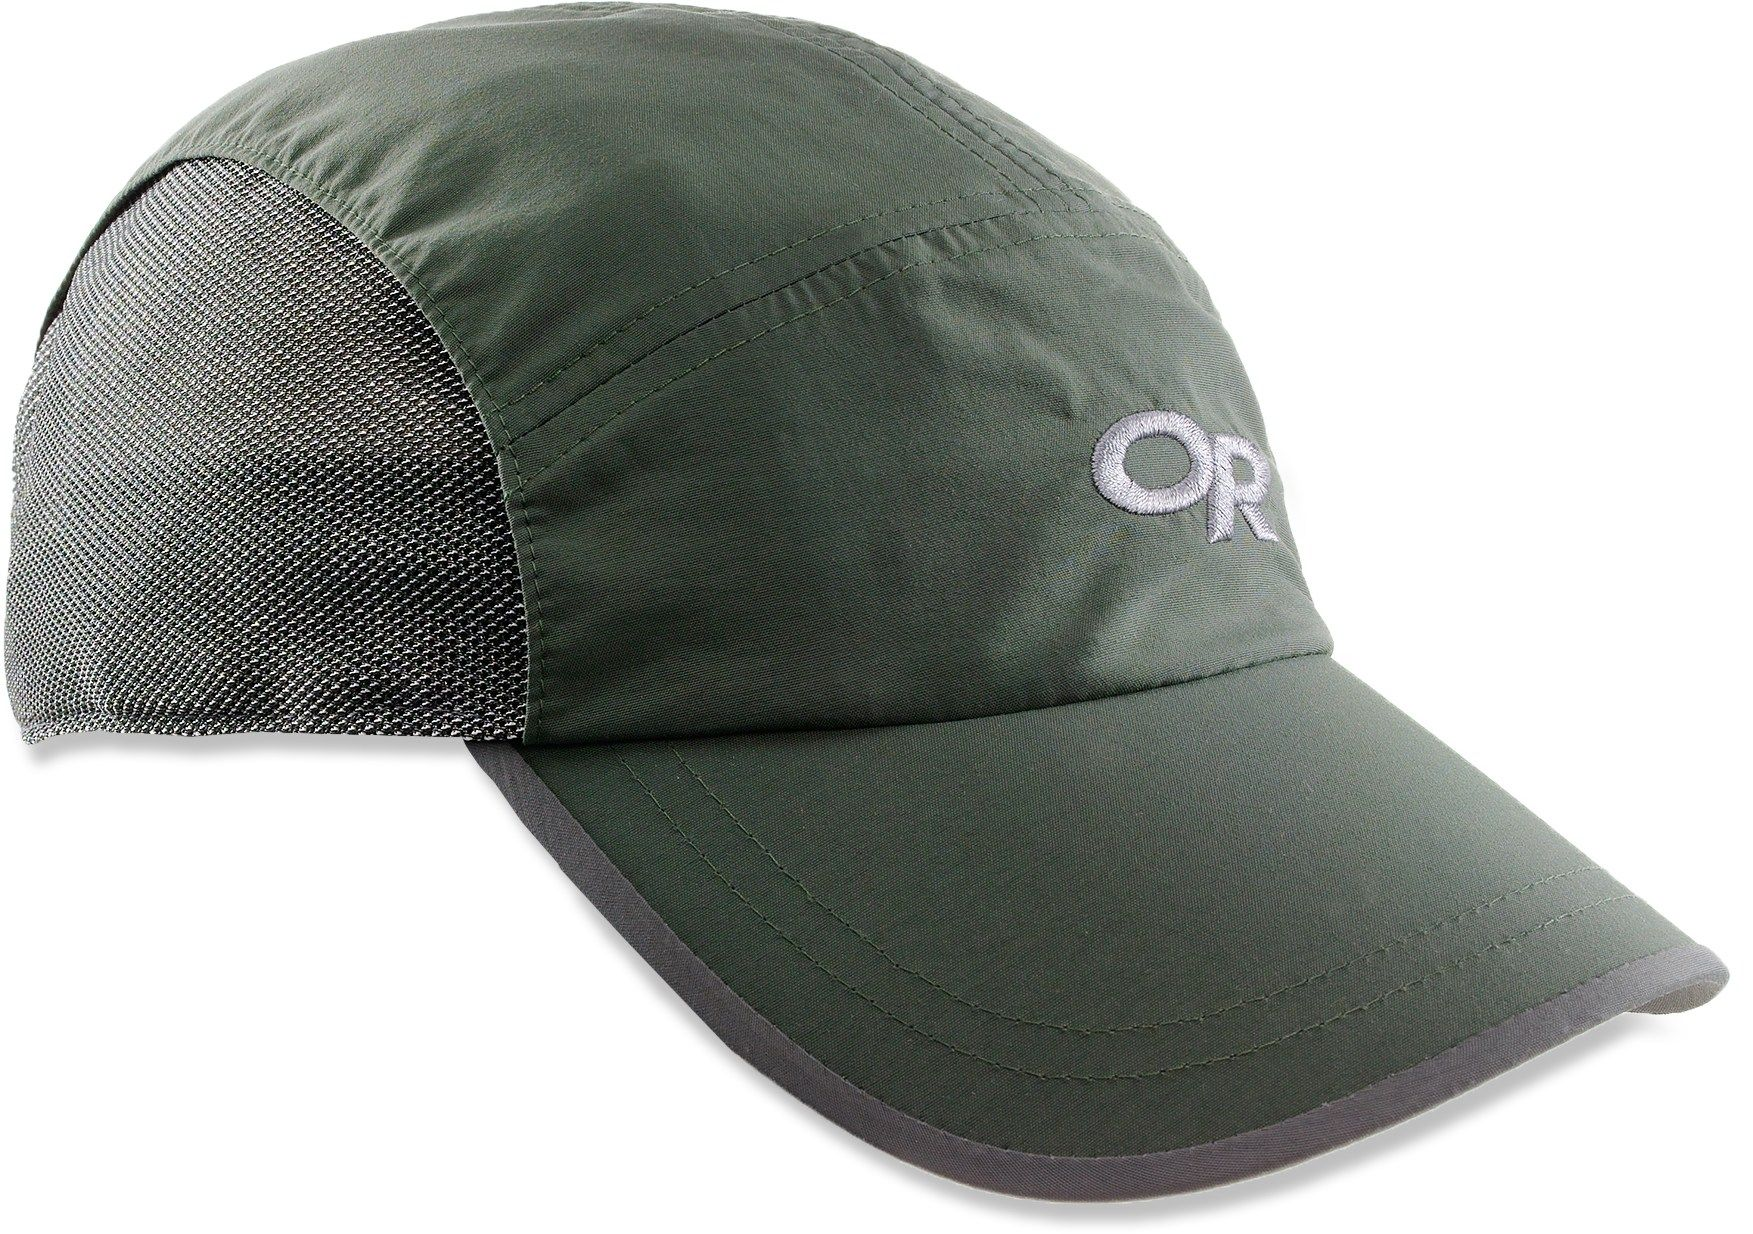 Outdoor Research Unisex Swift Cap